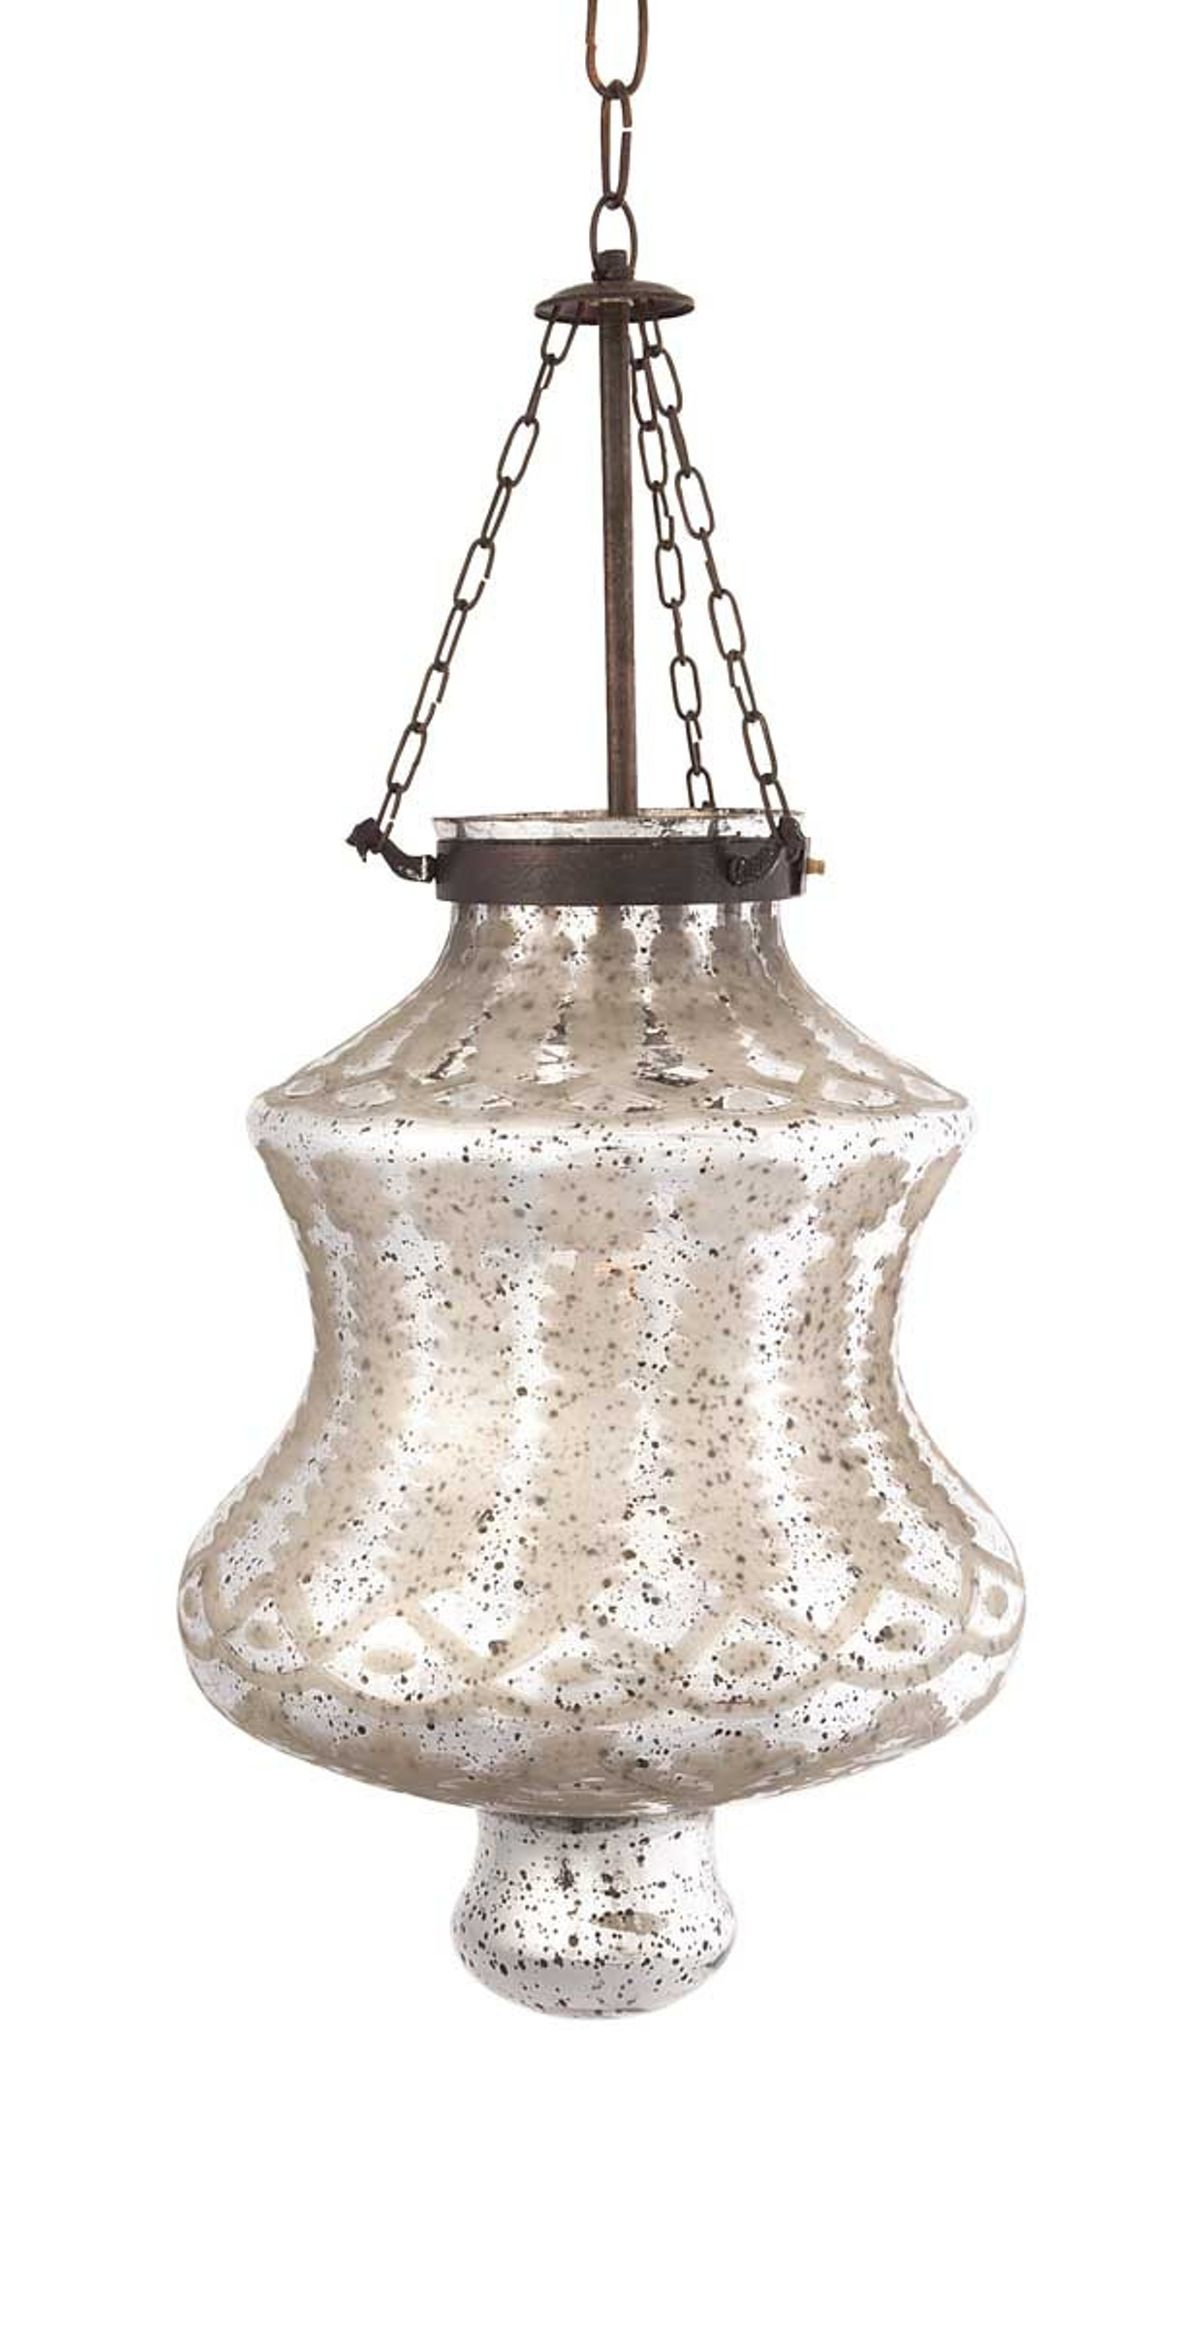 Etched Silver Mercury Glass And Iron Chain Add A Strikingly Beautiful Appearance To The Cadel Pendant Glass Pendant Light Pendant Light Hanging Ceiling Lights